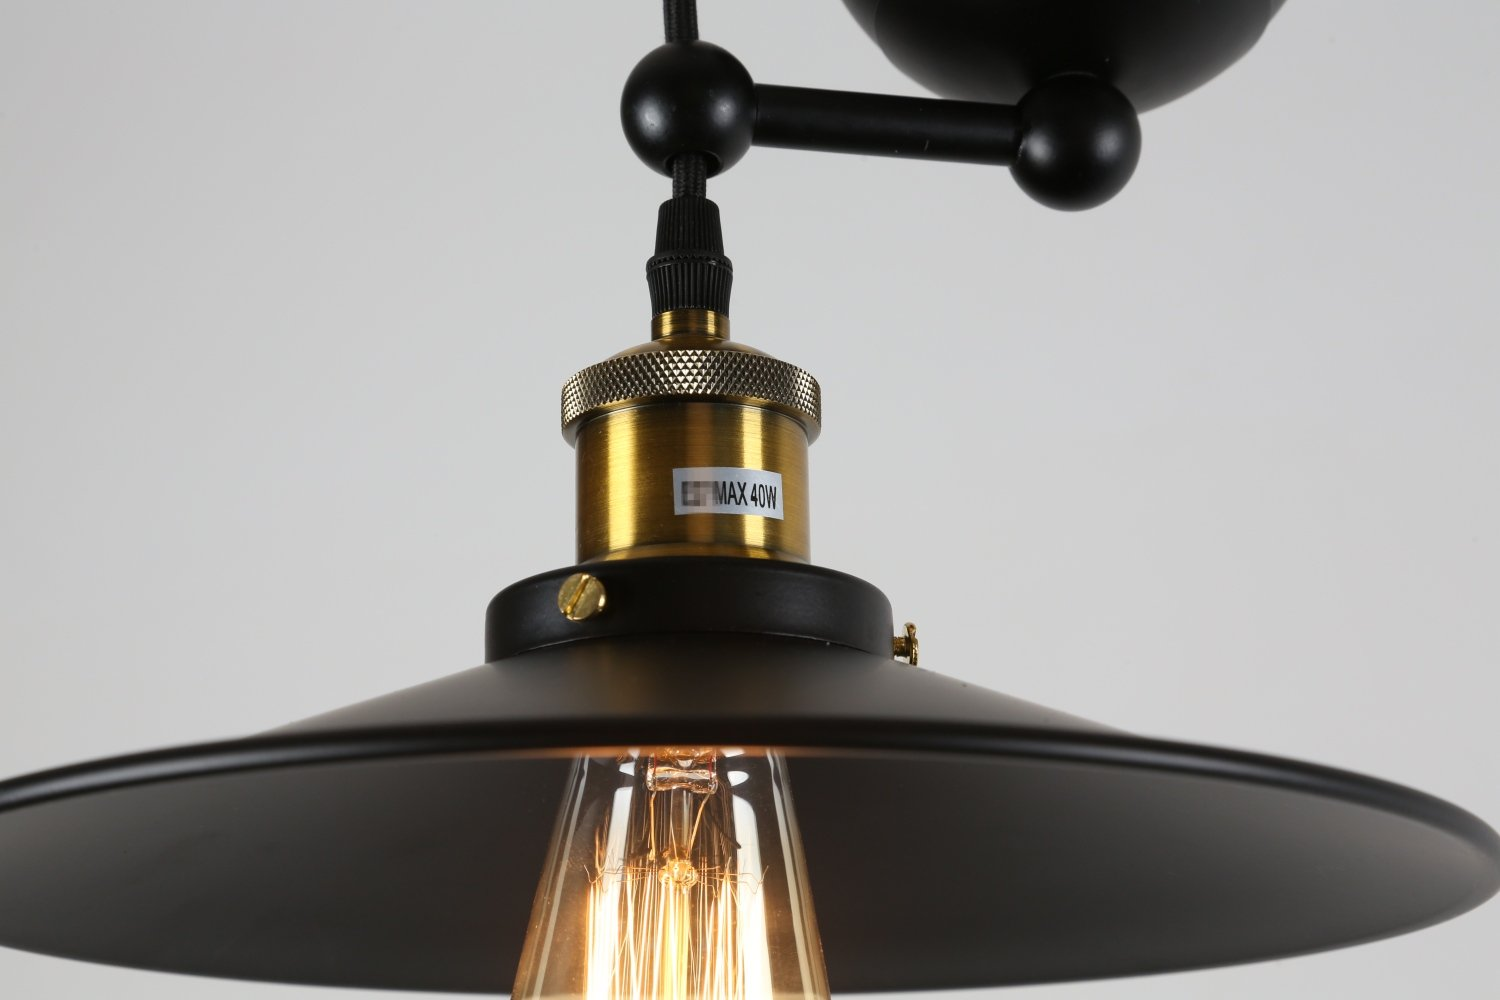 FebFurniture Vintage-Style Black Matte Iron Island Pendant Lights Ceiling Lighting Fixed Pulley Chandelier with Umbrella Lamp Shades Height Adjustable